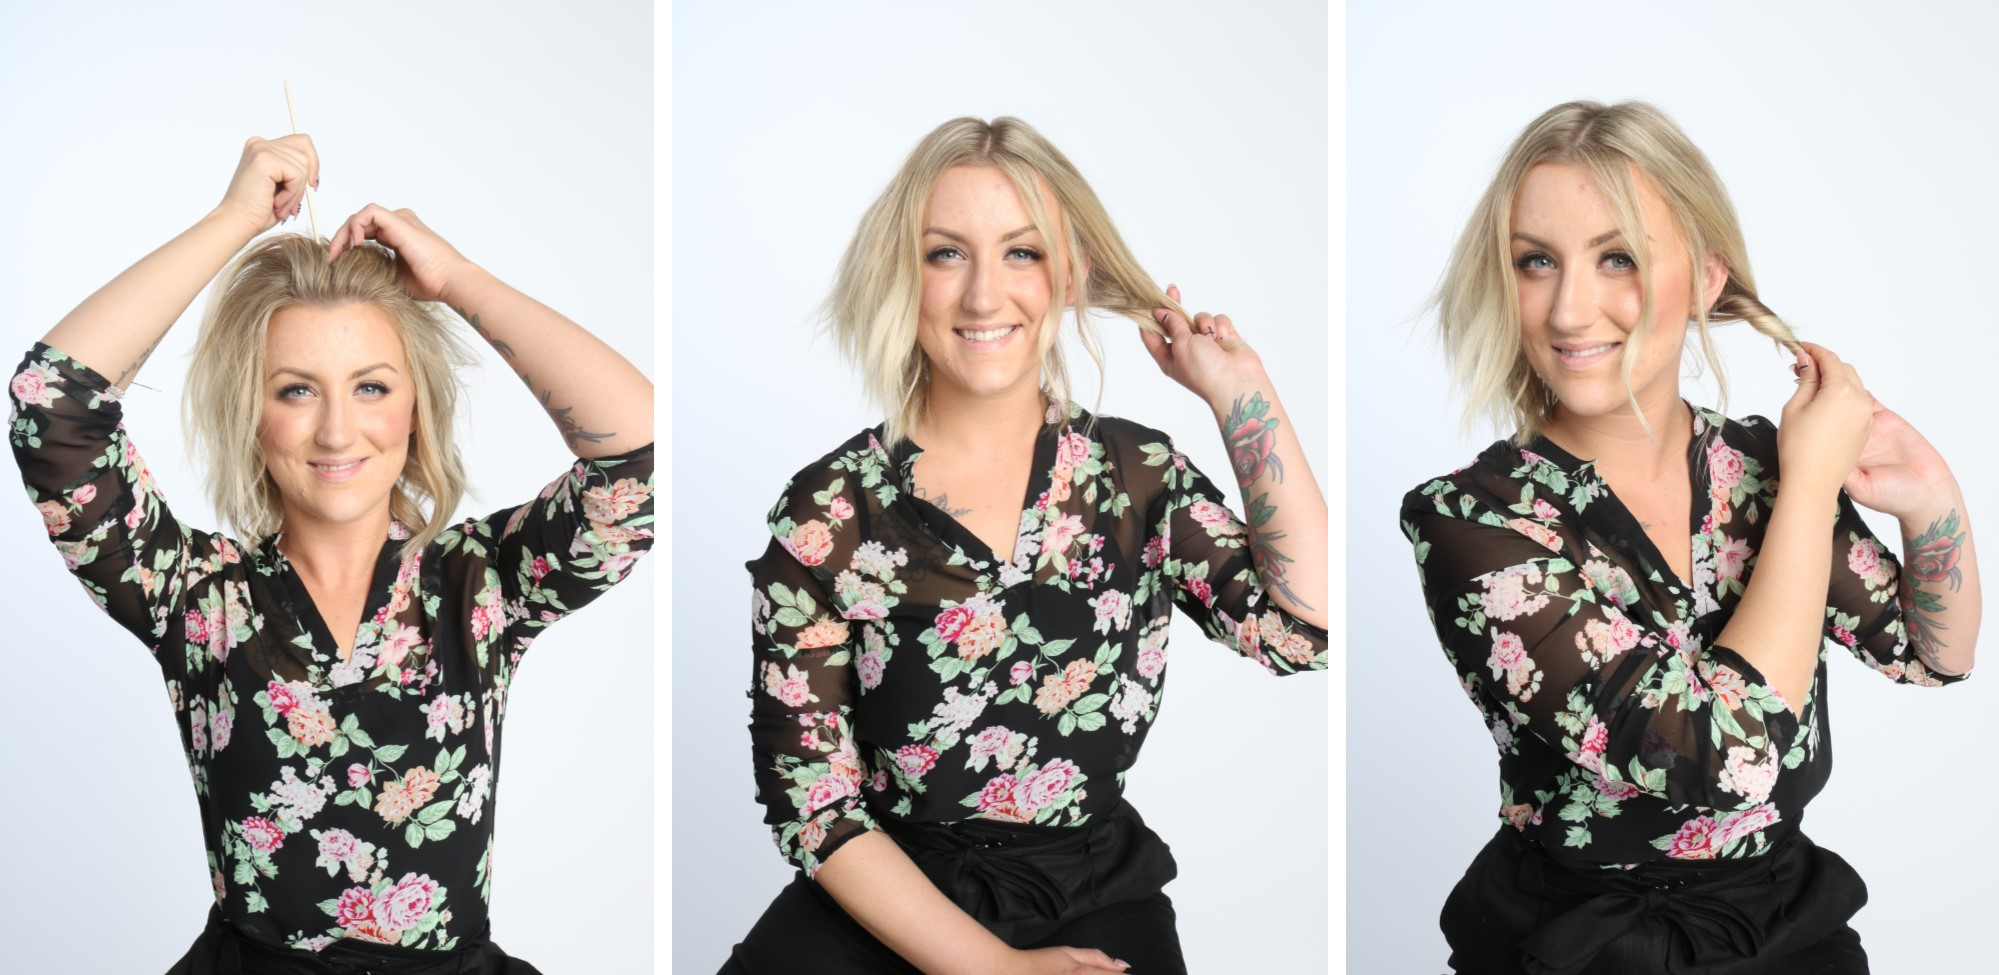 hannah, stylist, master, aveda, professional, office, hair, hairstyle, step by step